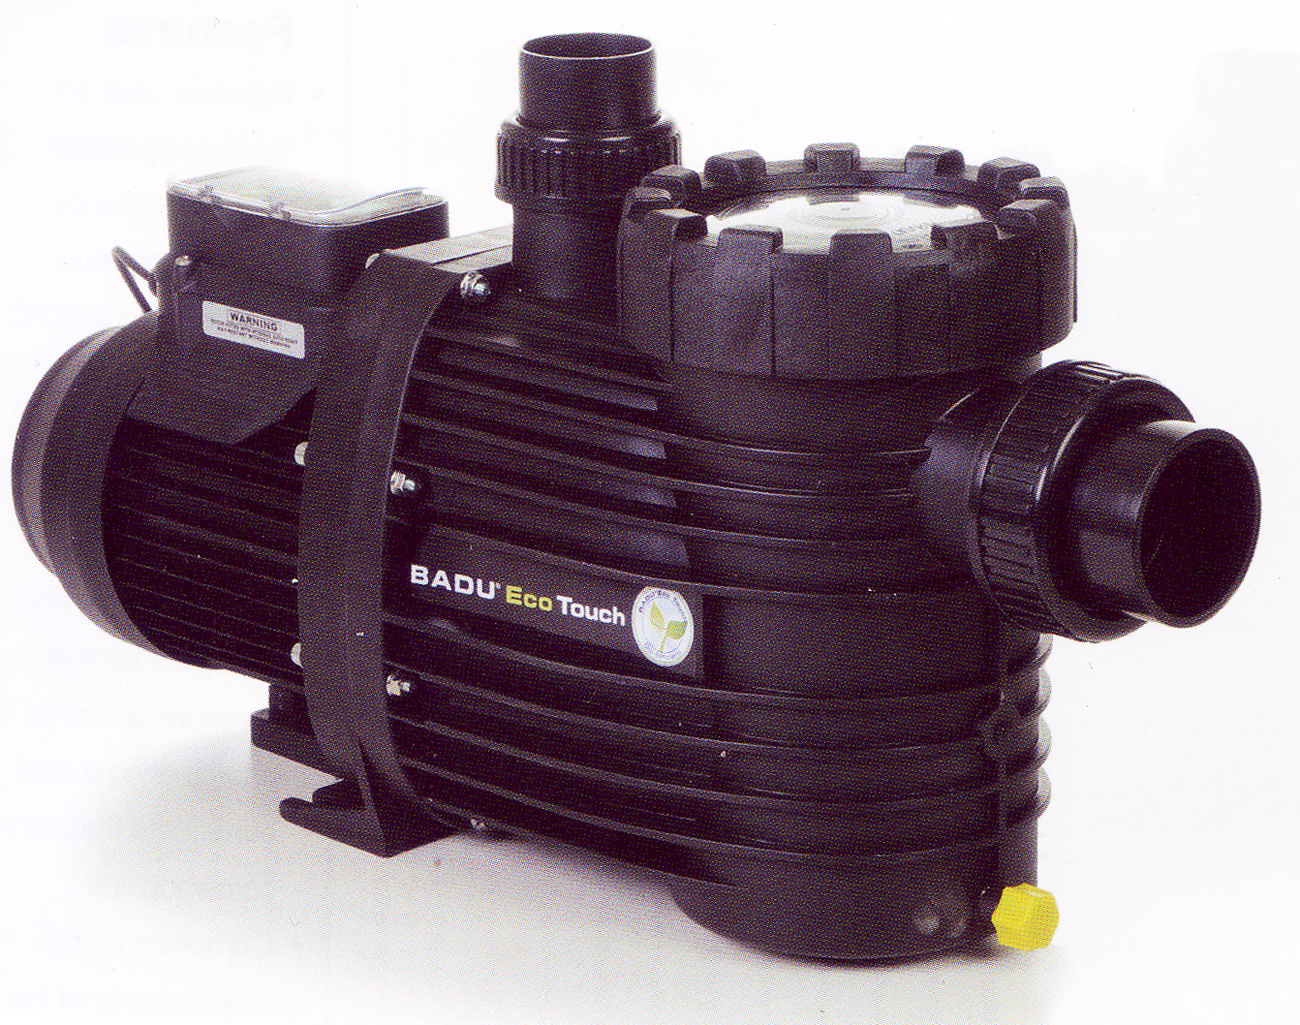 Speck Badu Eco Touch Swimming Pool Pump